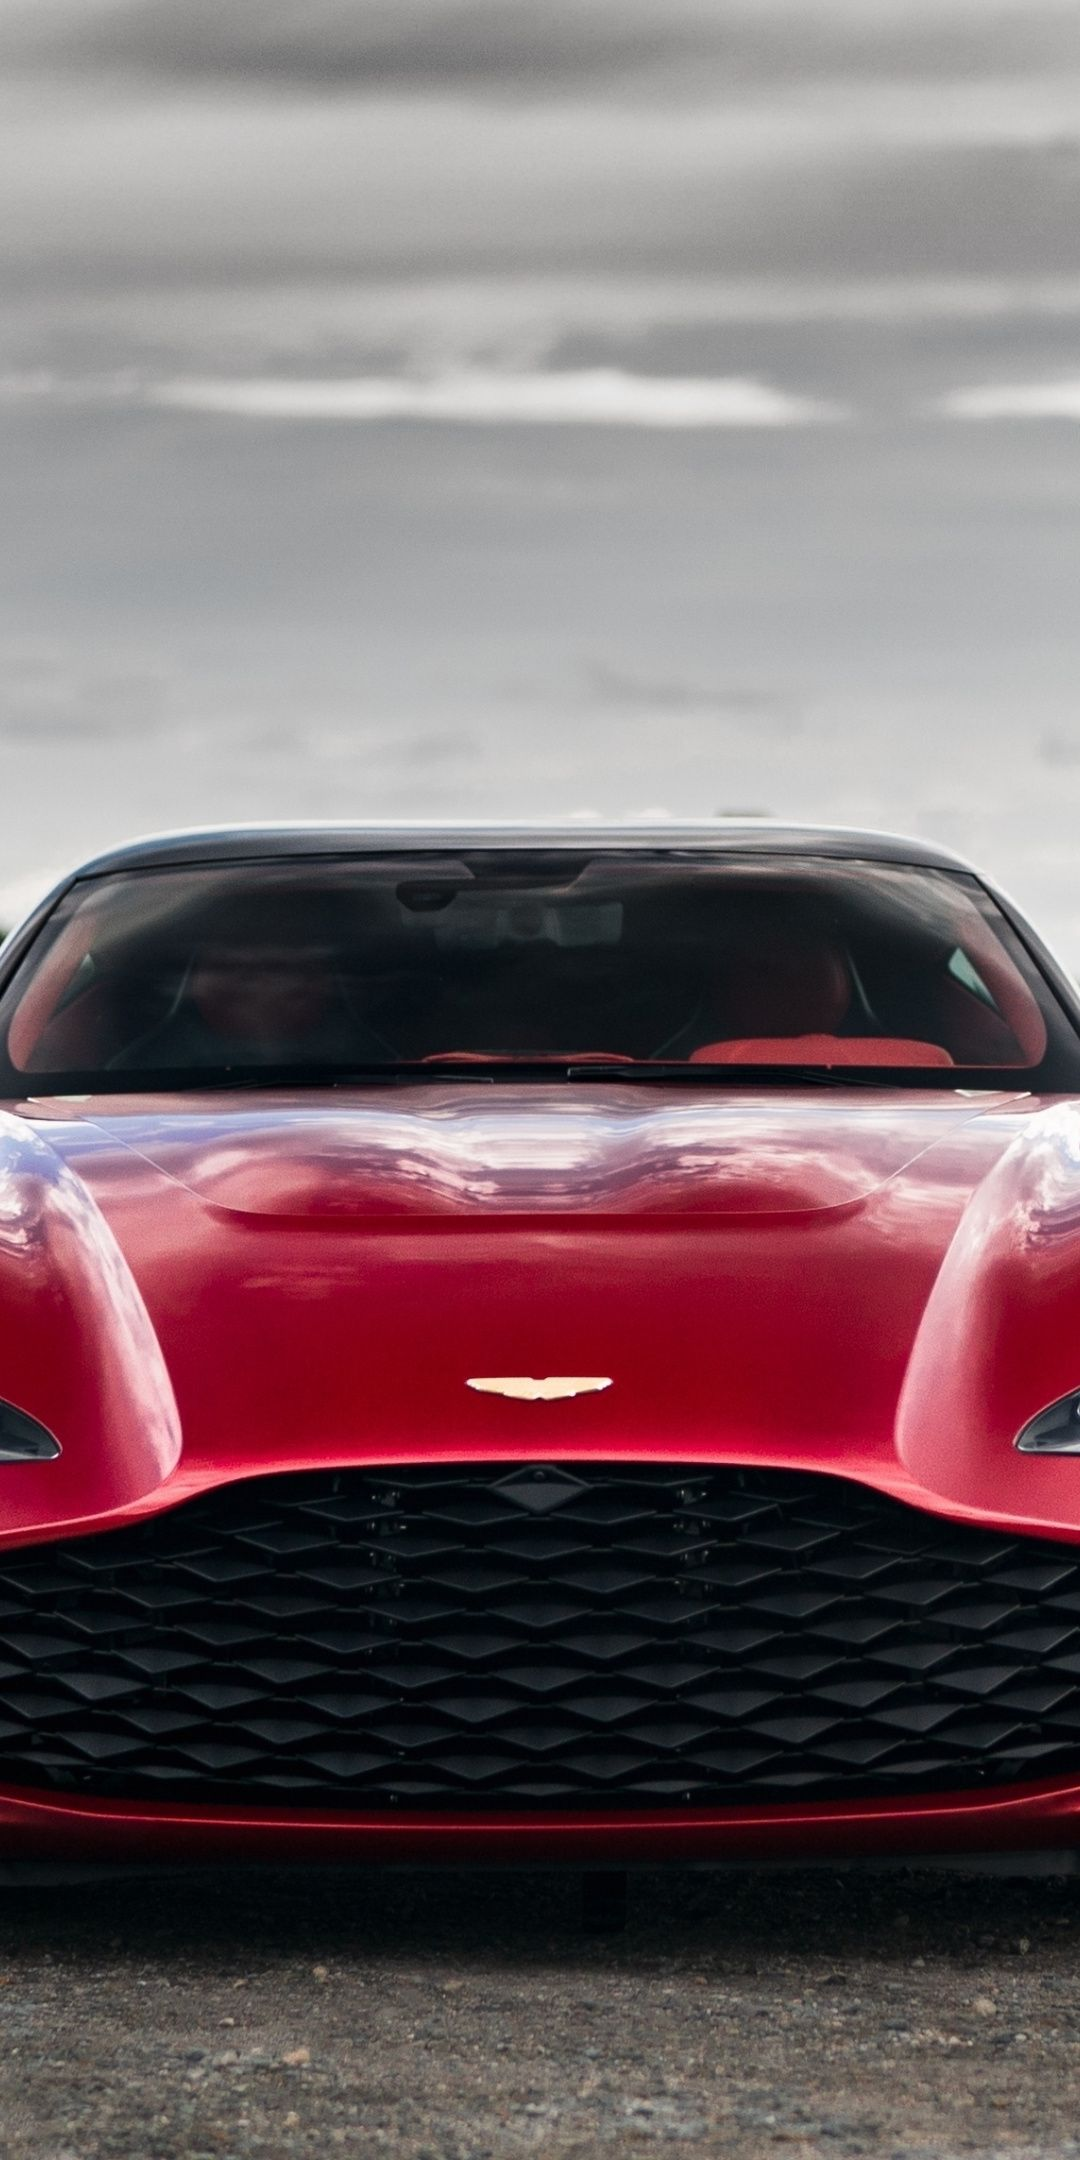 1080x2160 Red Car Aston Martin Dbs Gt Agato Front View Wallpaper Aston Martin Dbs Red Car Aston Martin